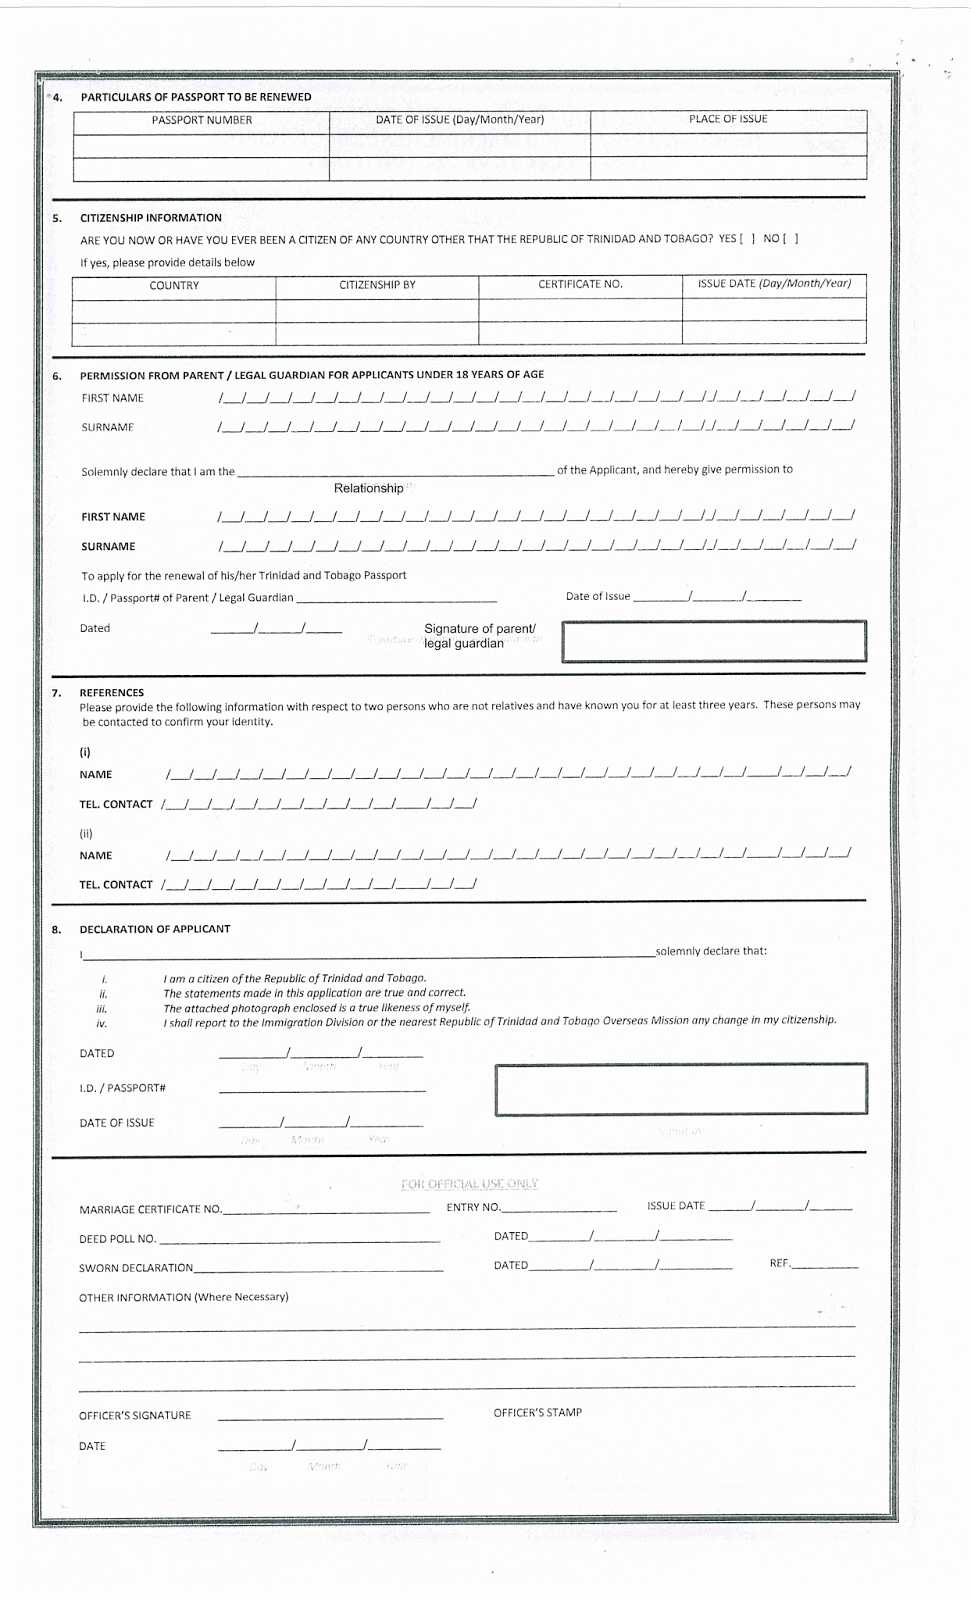 Passport renewal form geminifm application forms blsindiavisa uae passport renewal form falaconquin